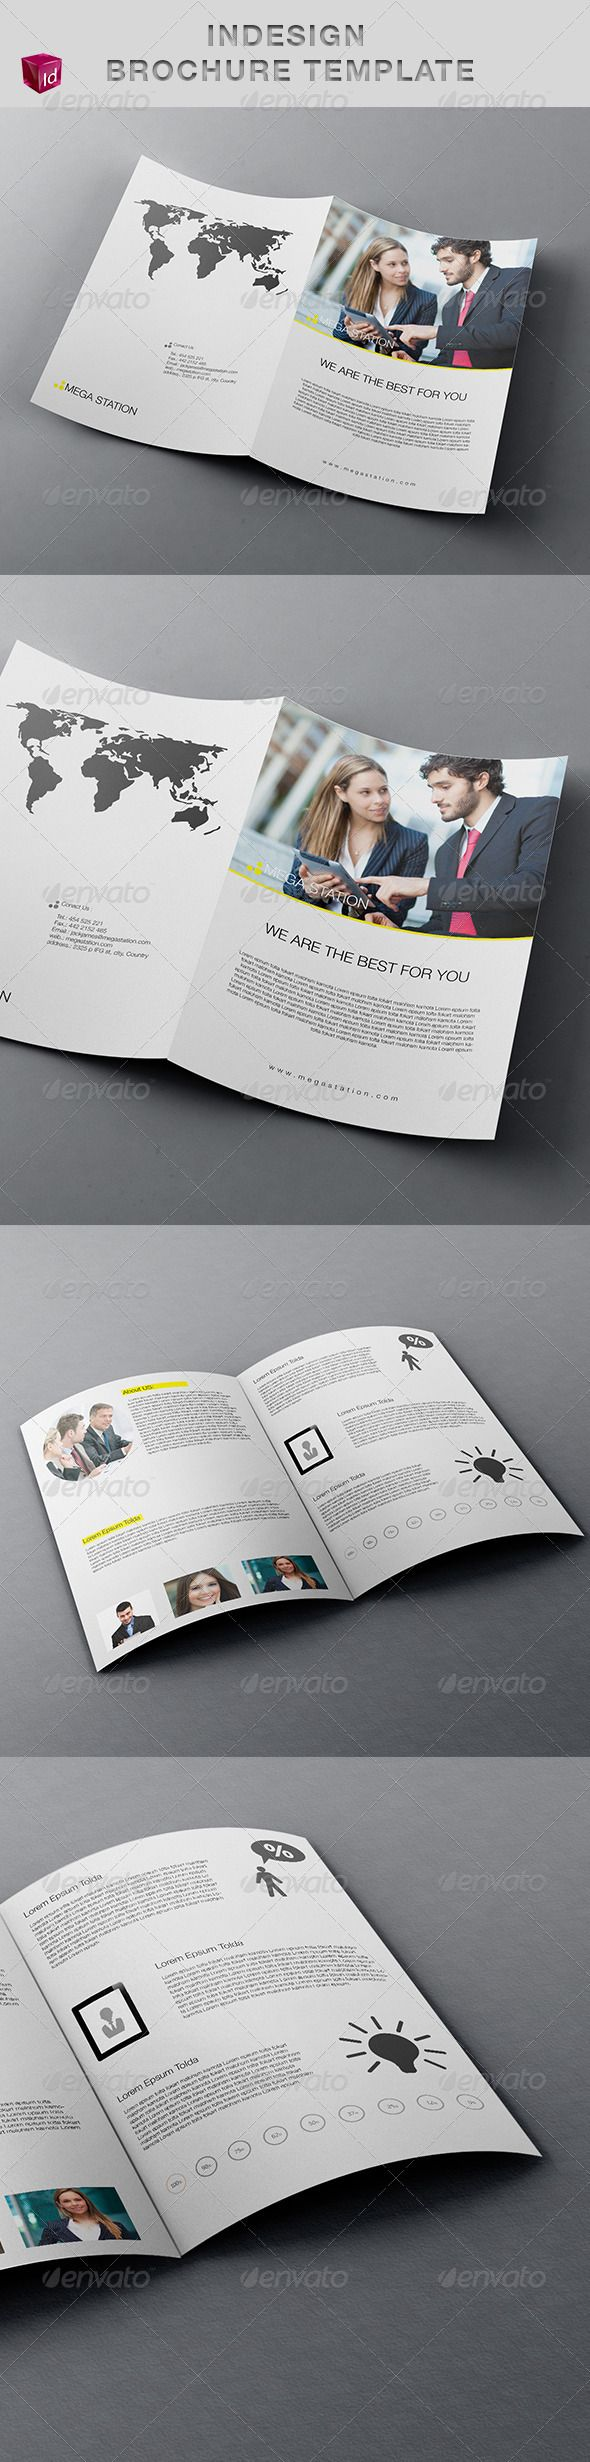 Top 25 ideas about print templates on pinterest fonts for Indesign bi fold brochure template